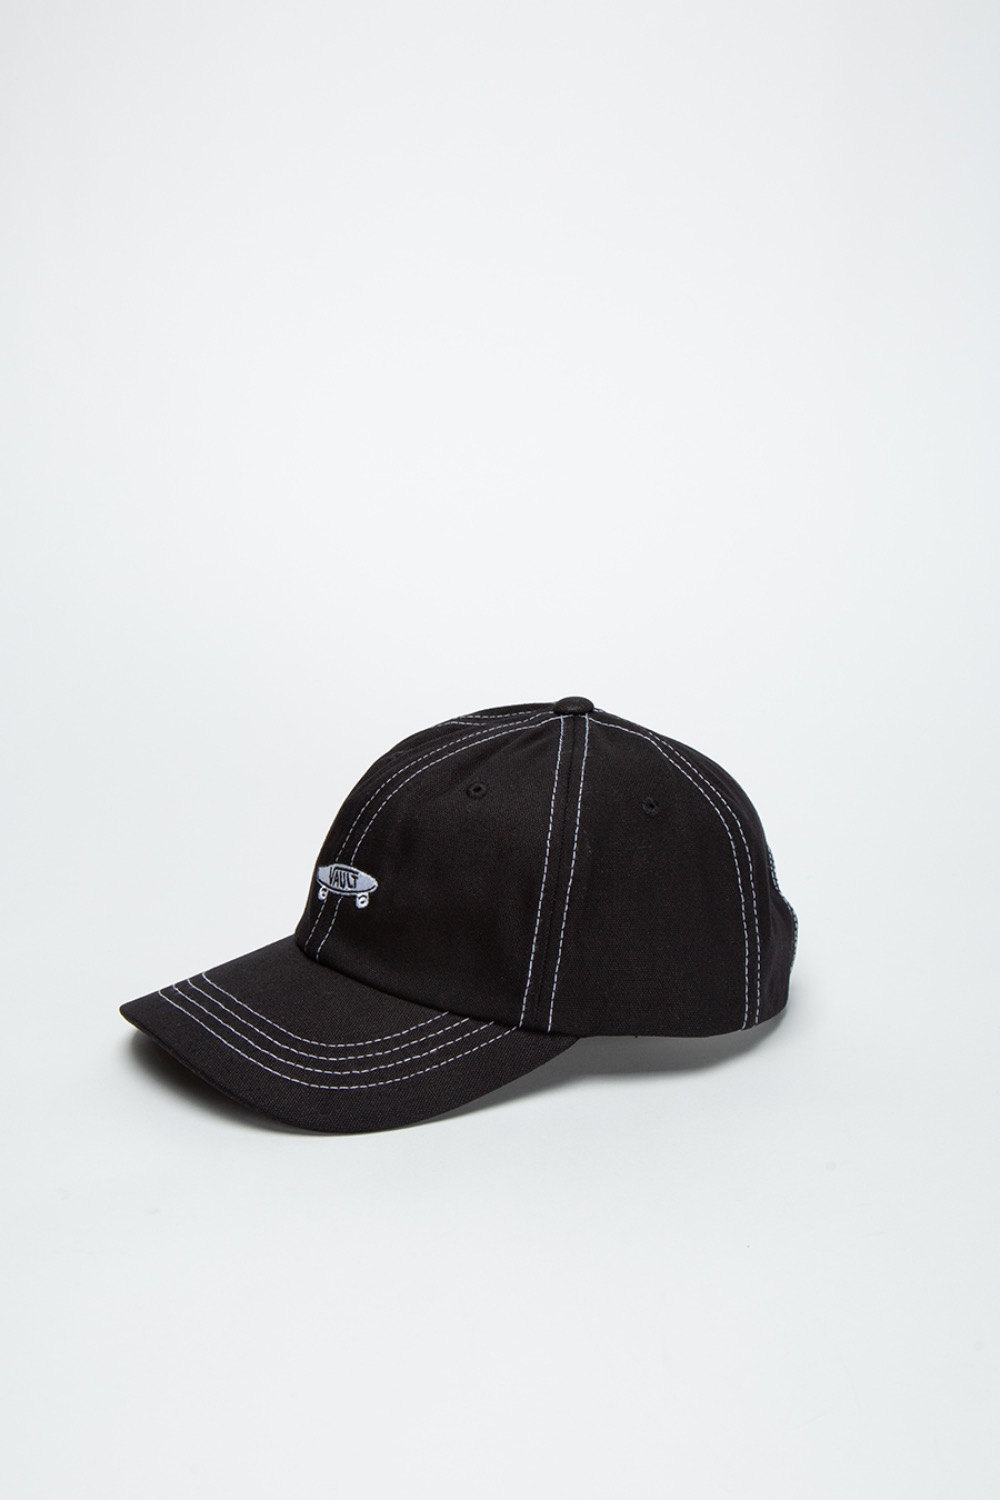 VAULT OG CURVED BILL JOCKEY BLACK